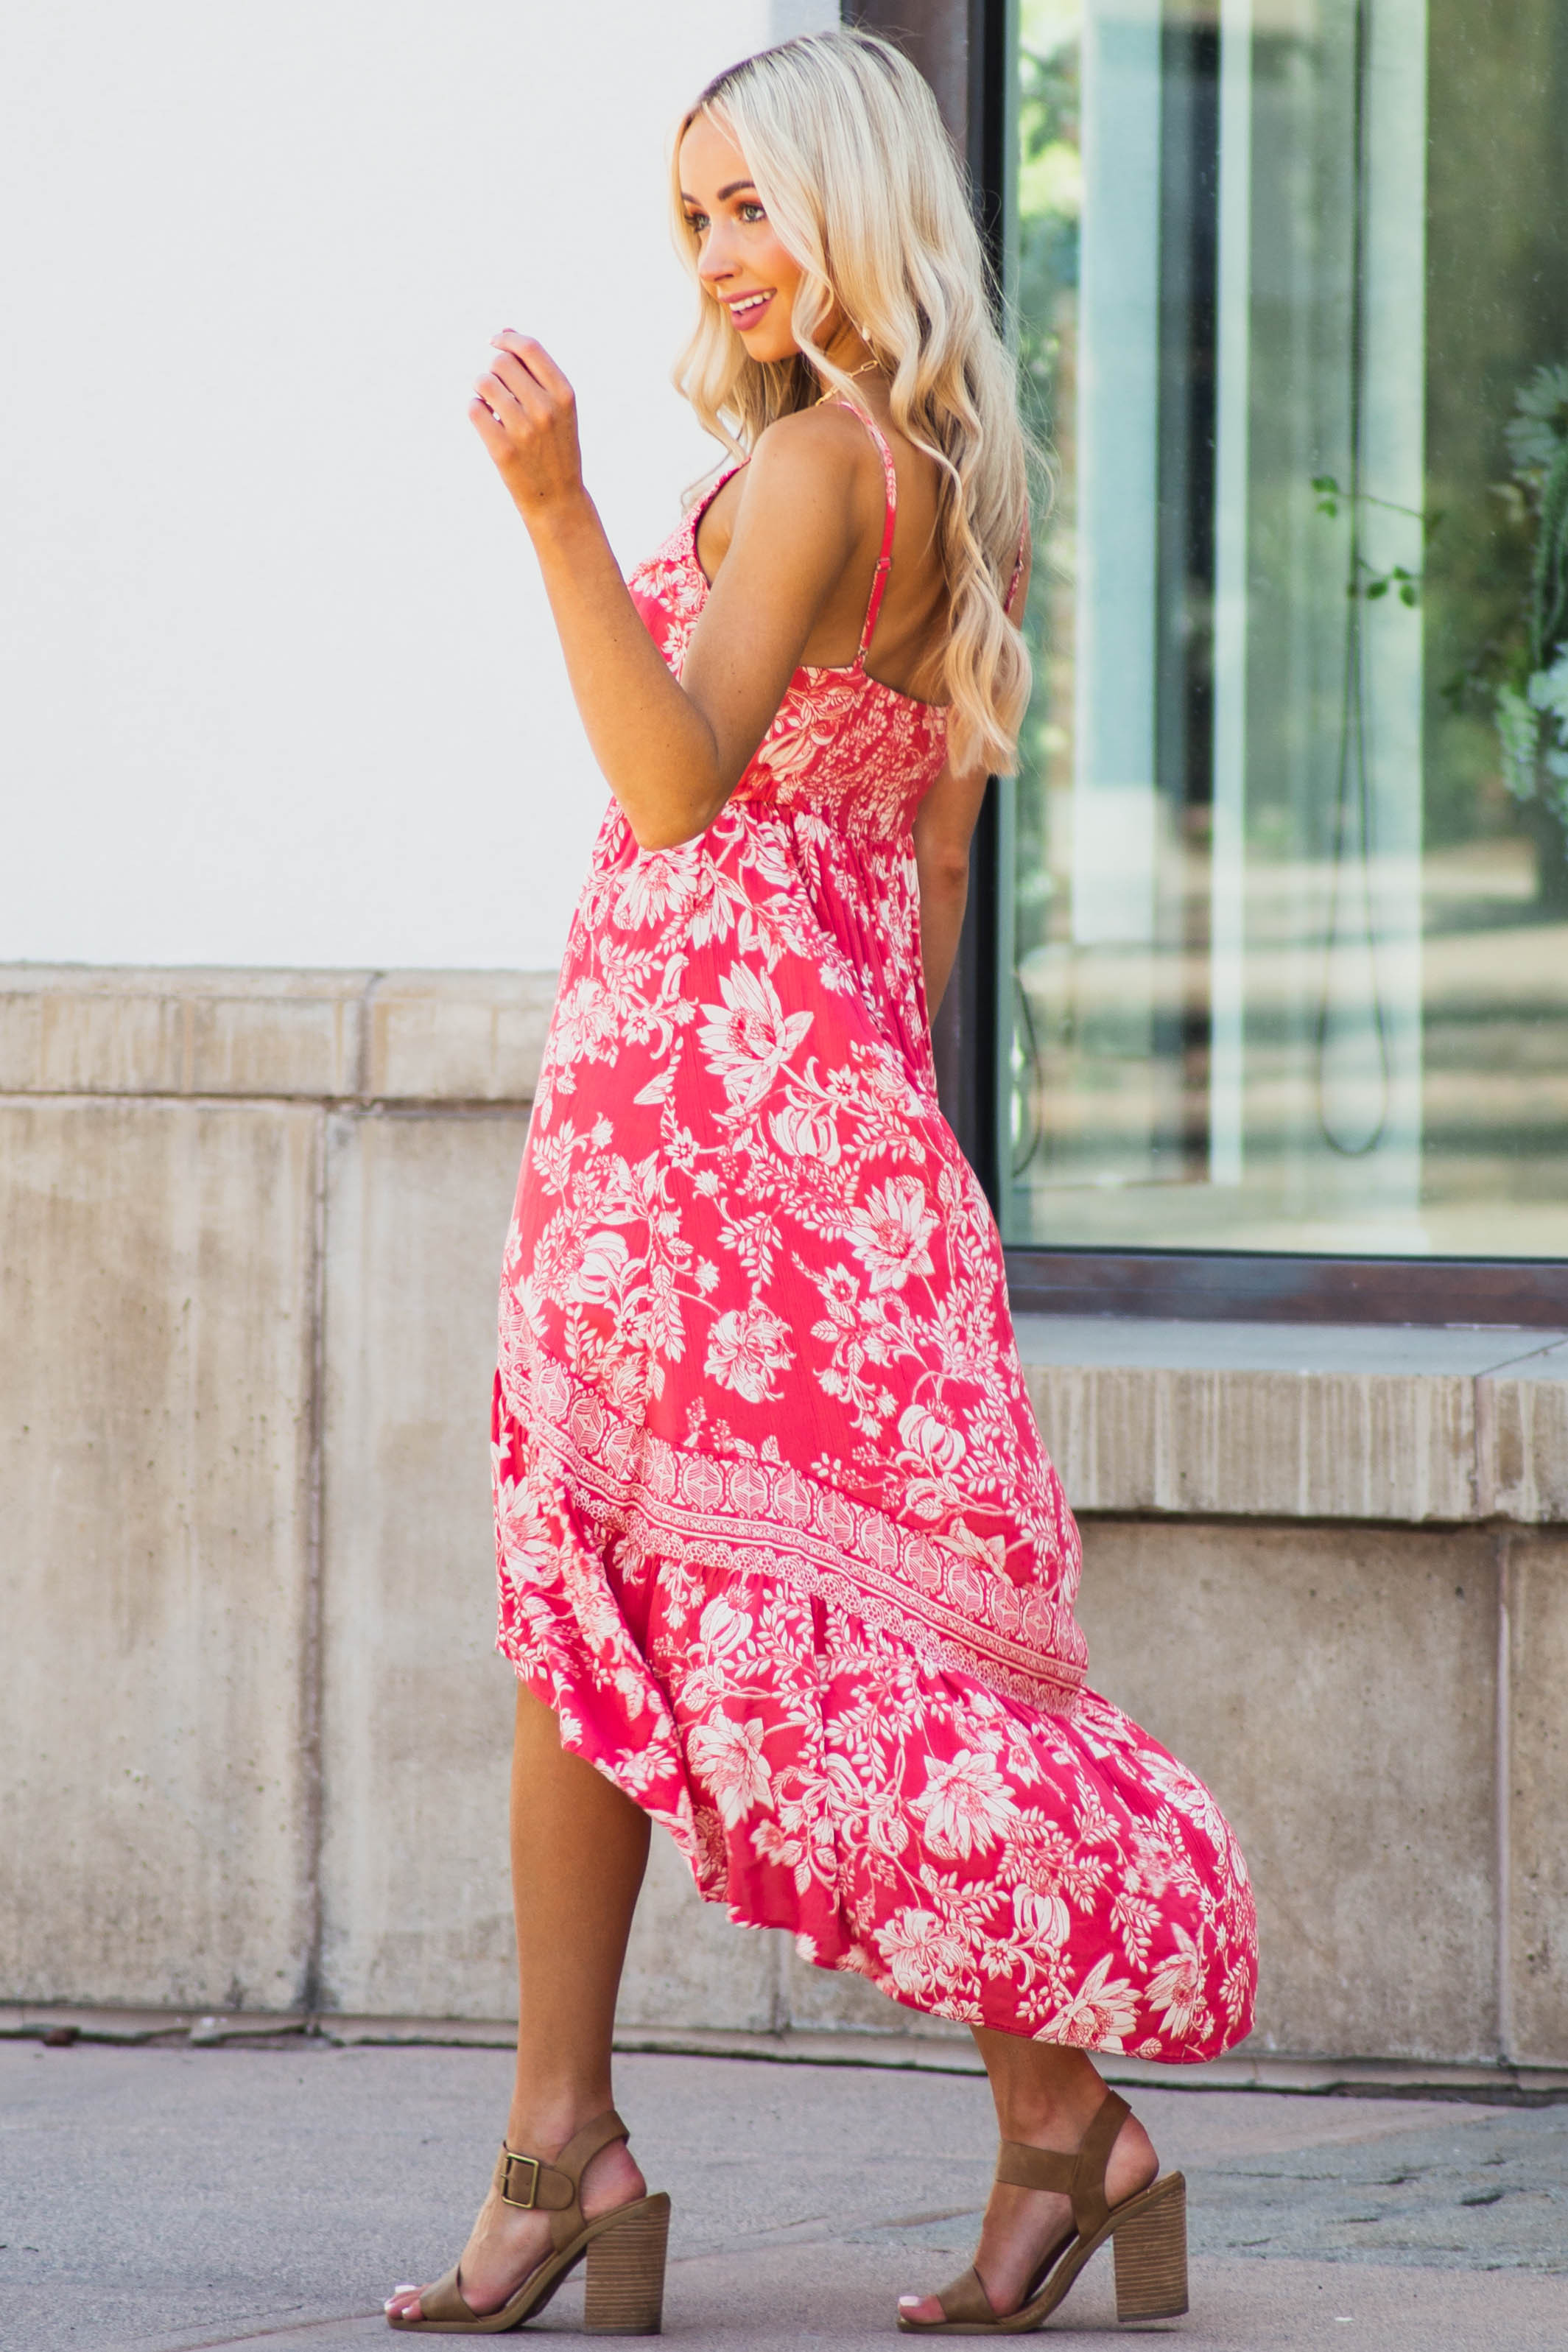 Faded Red Floral Sleeveless Dress with Ruffle High Low Hem